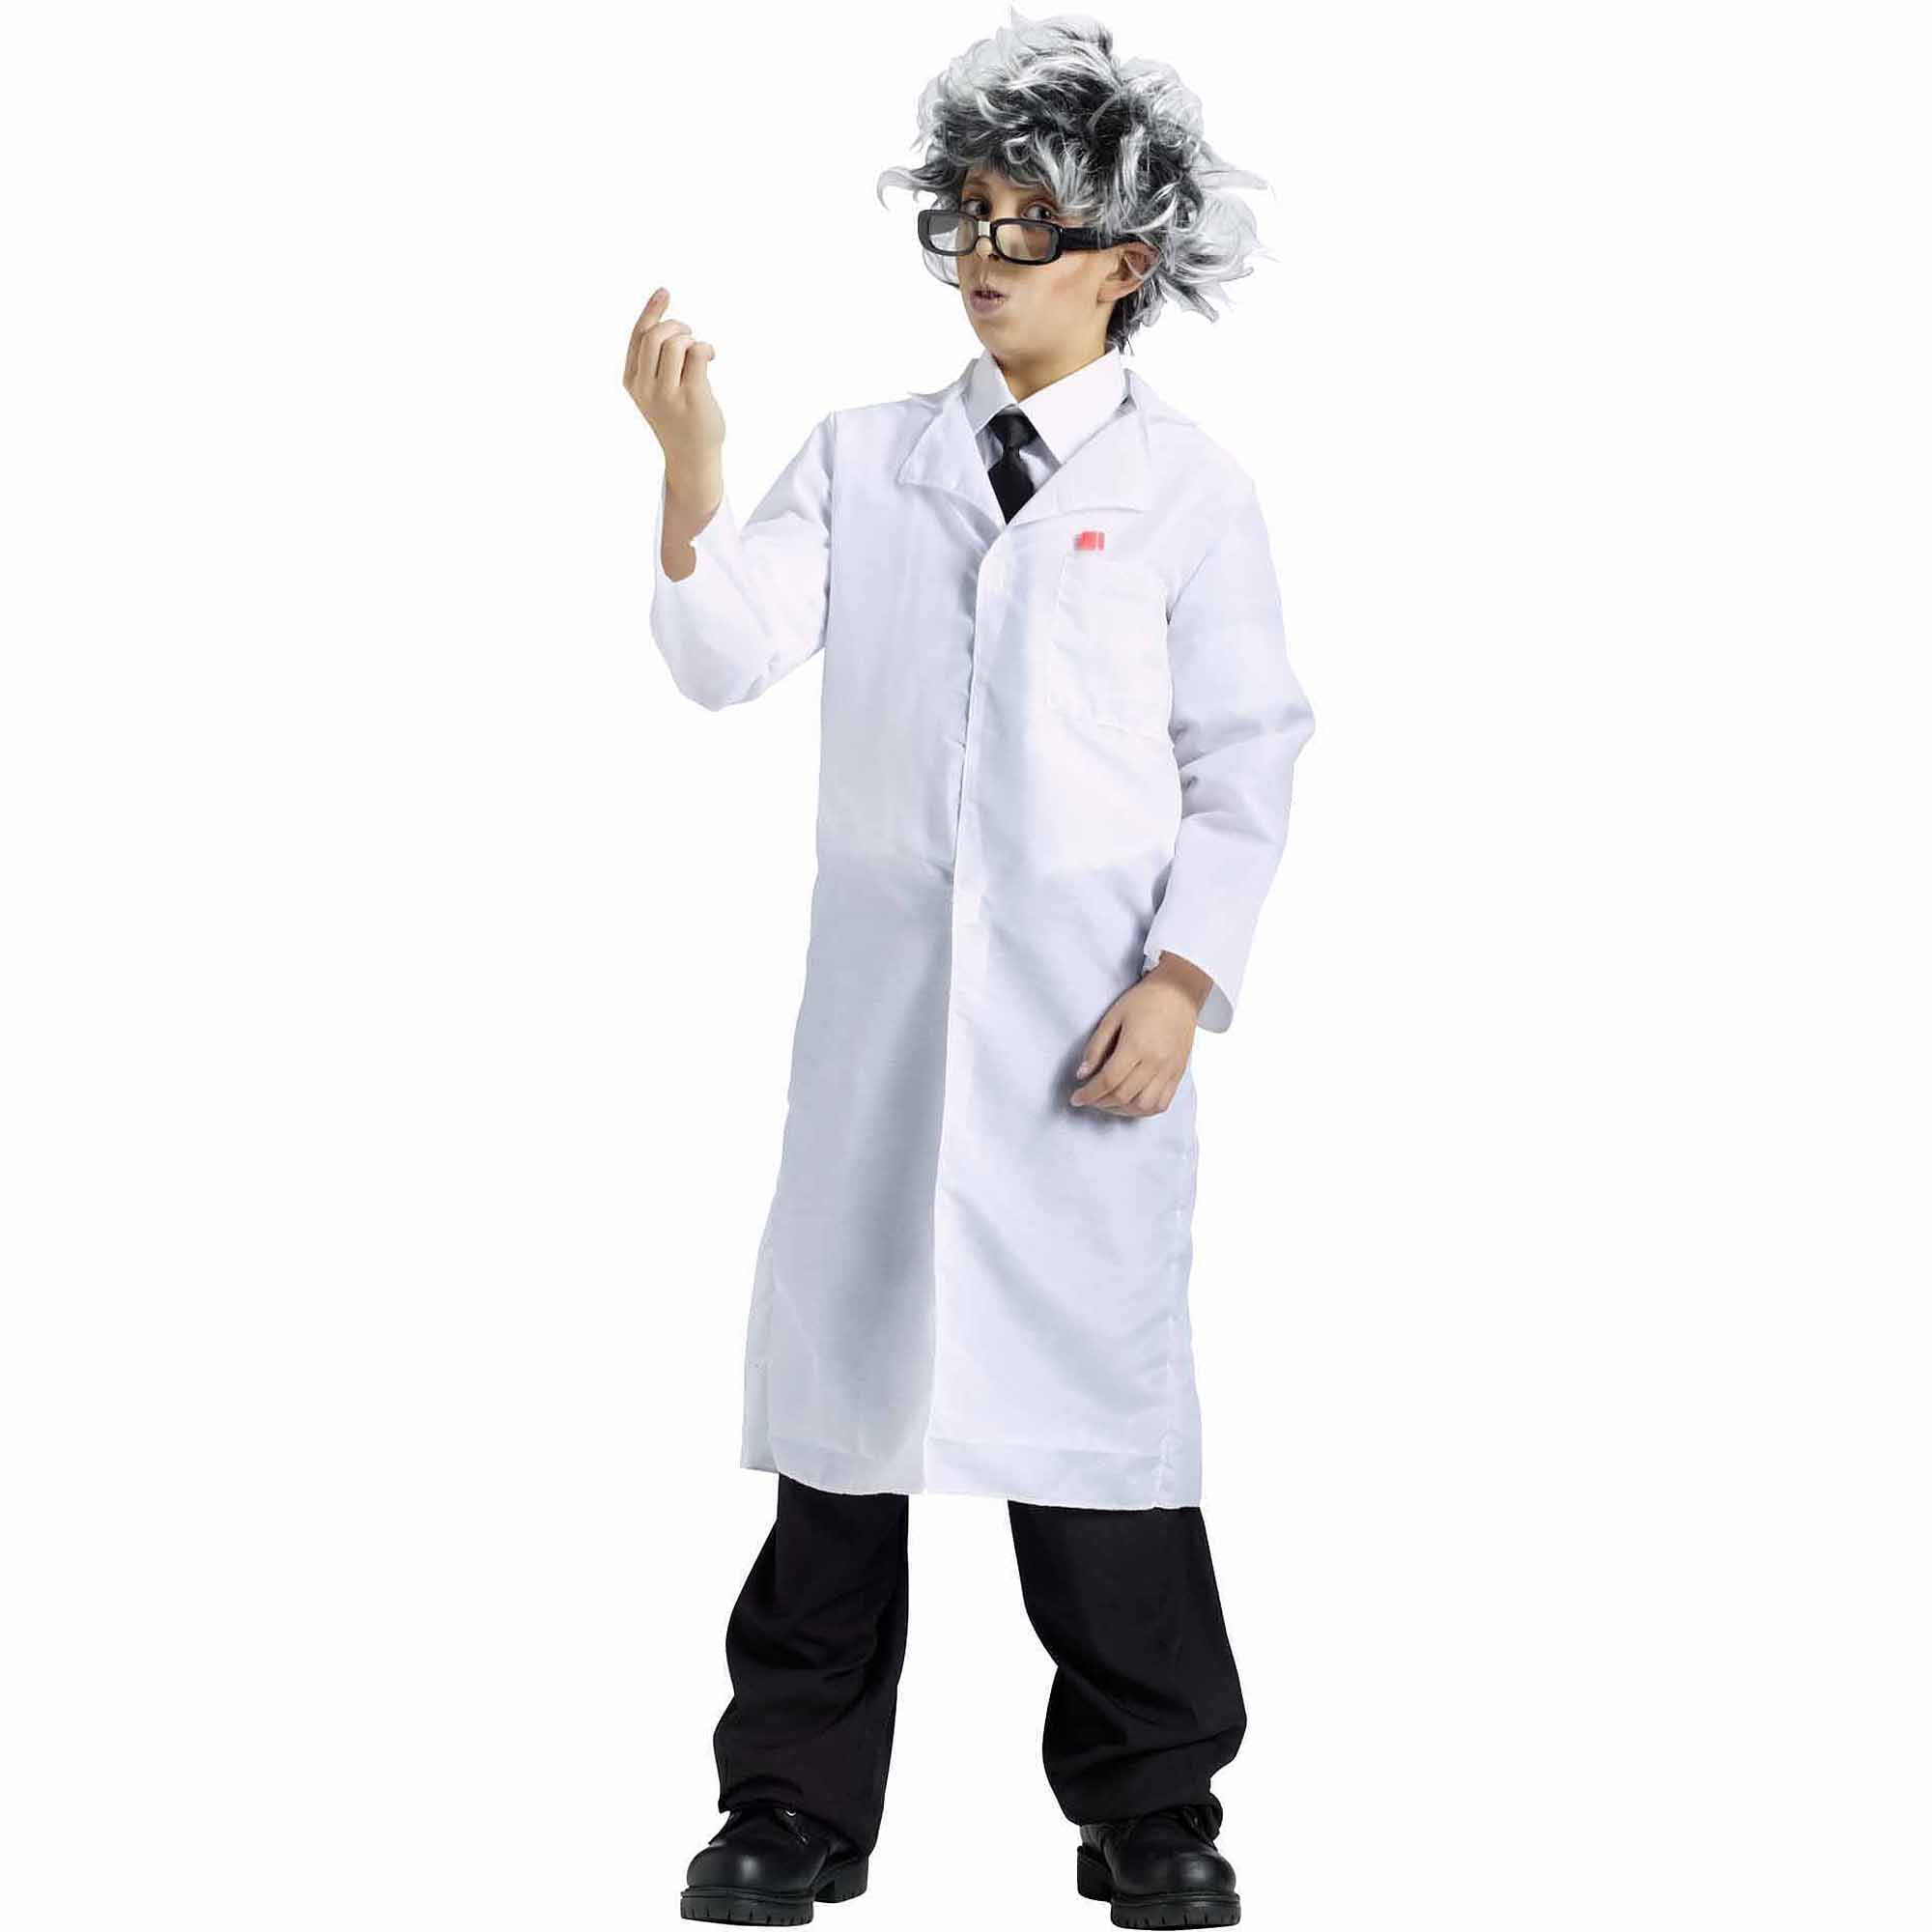 Lab Coat Child Halloween Costume - Walmart.com